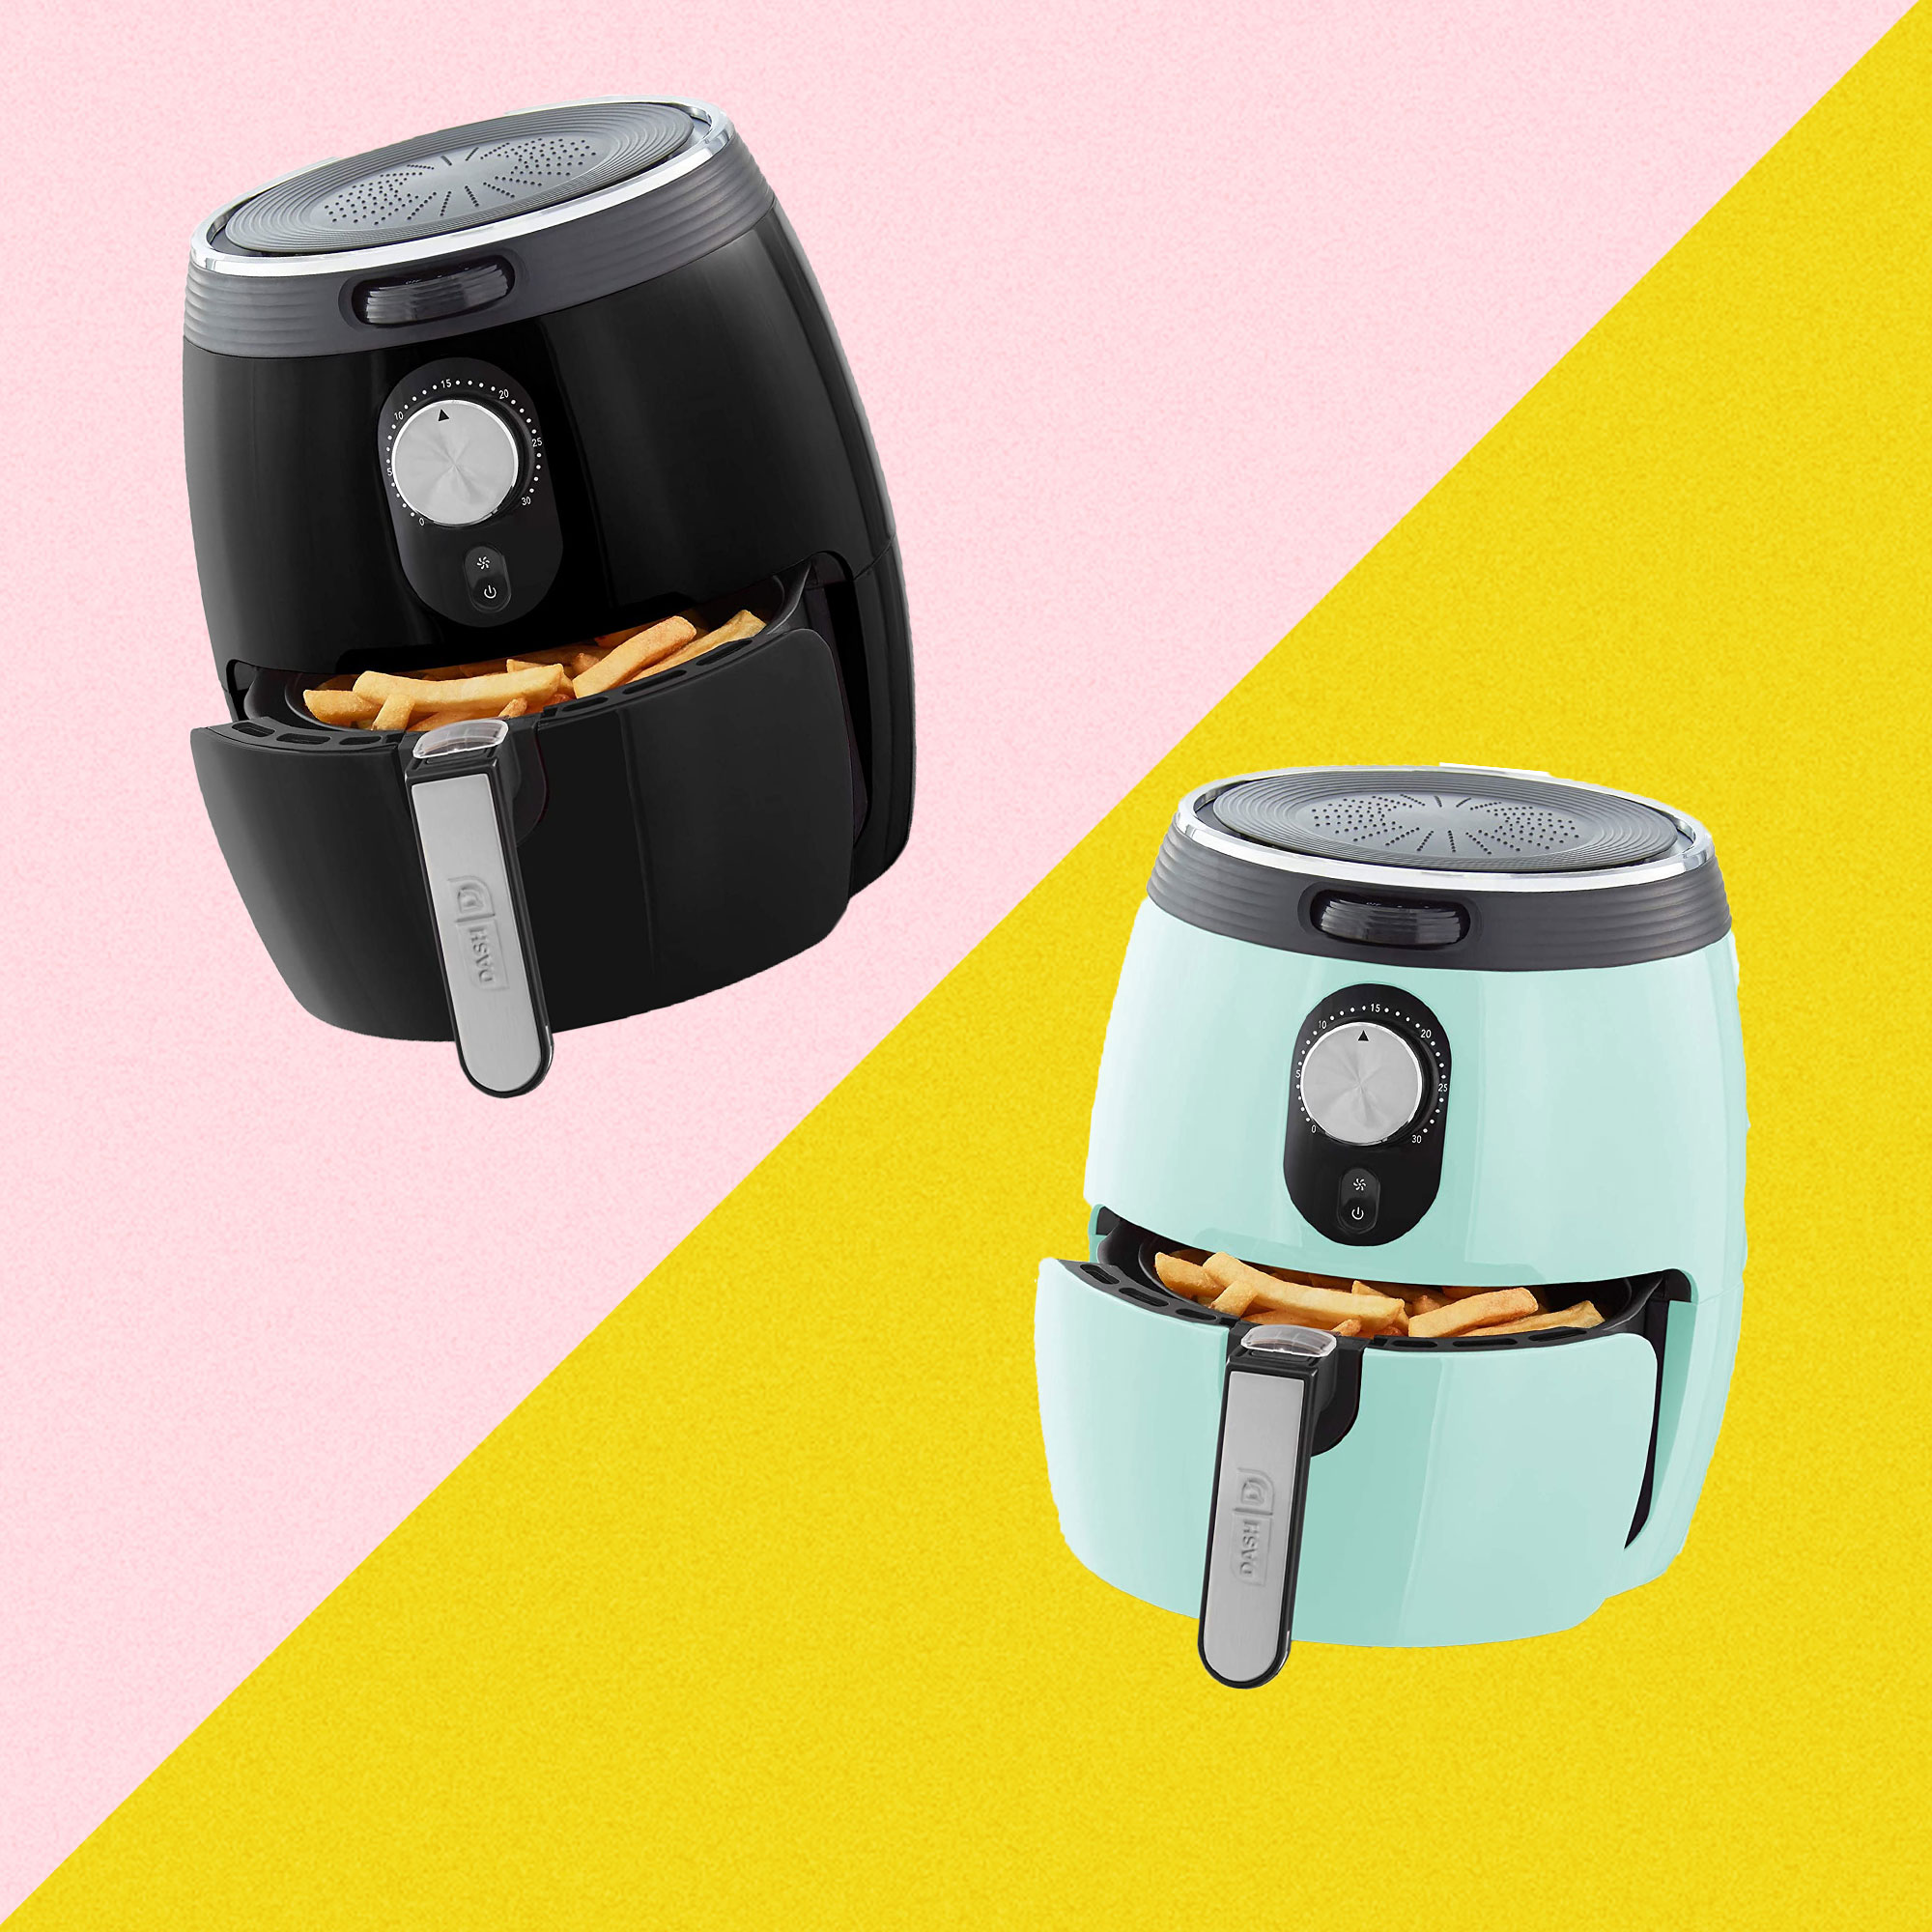 Dash air fryer in aqua and black